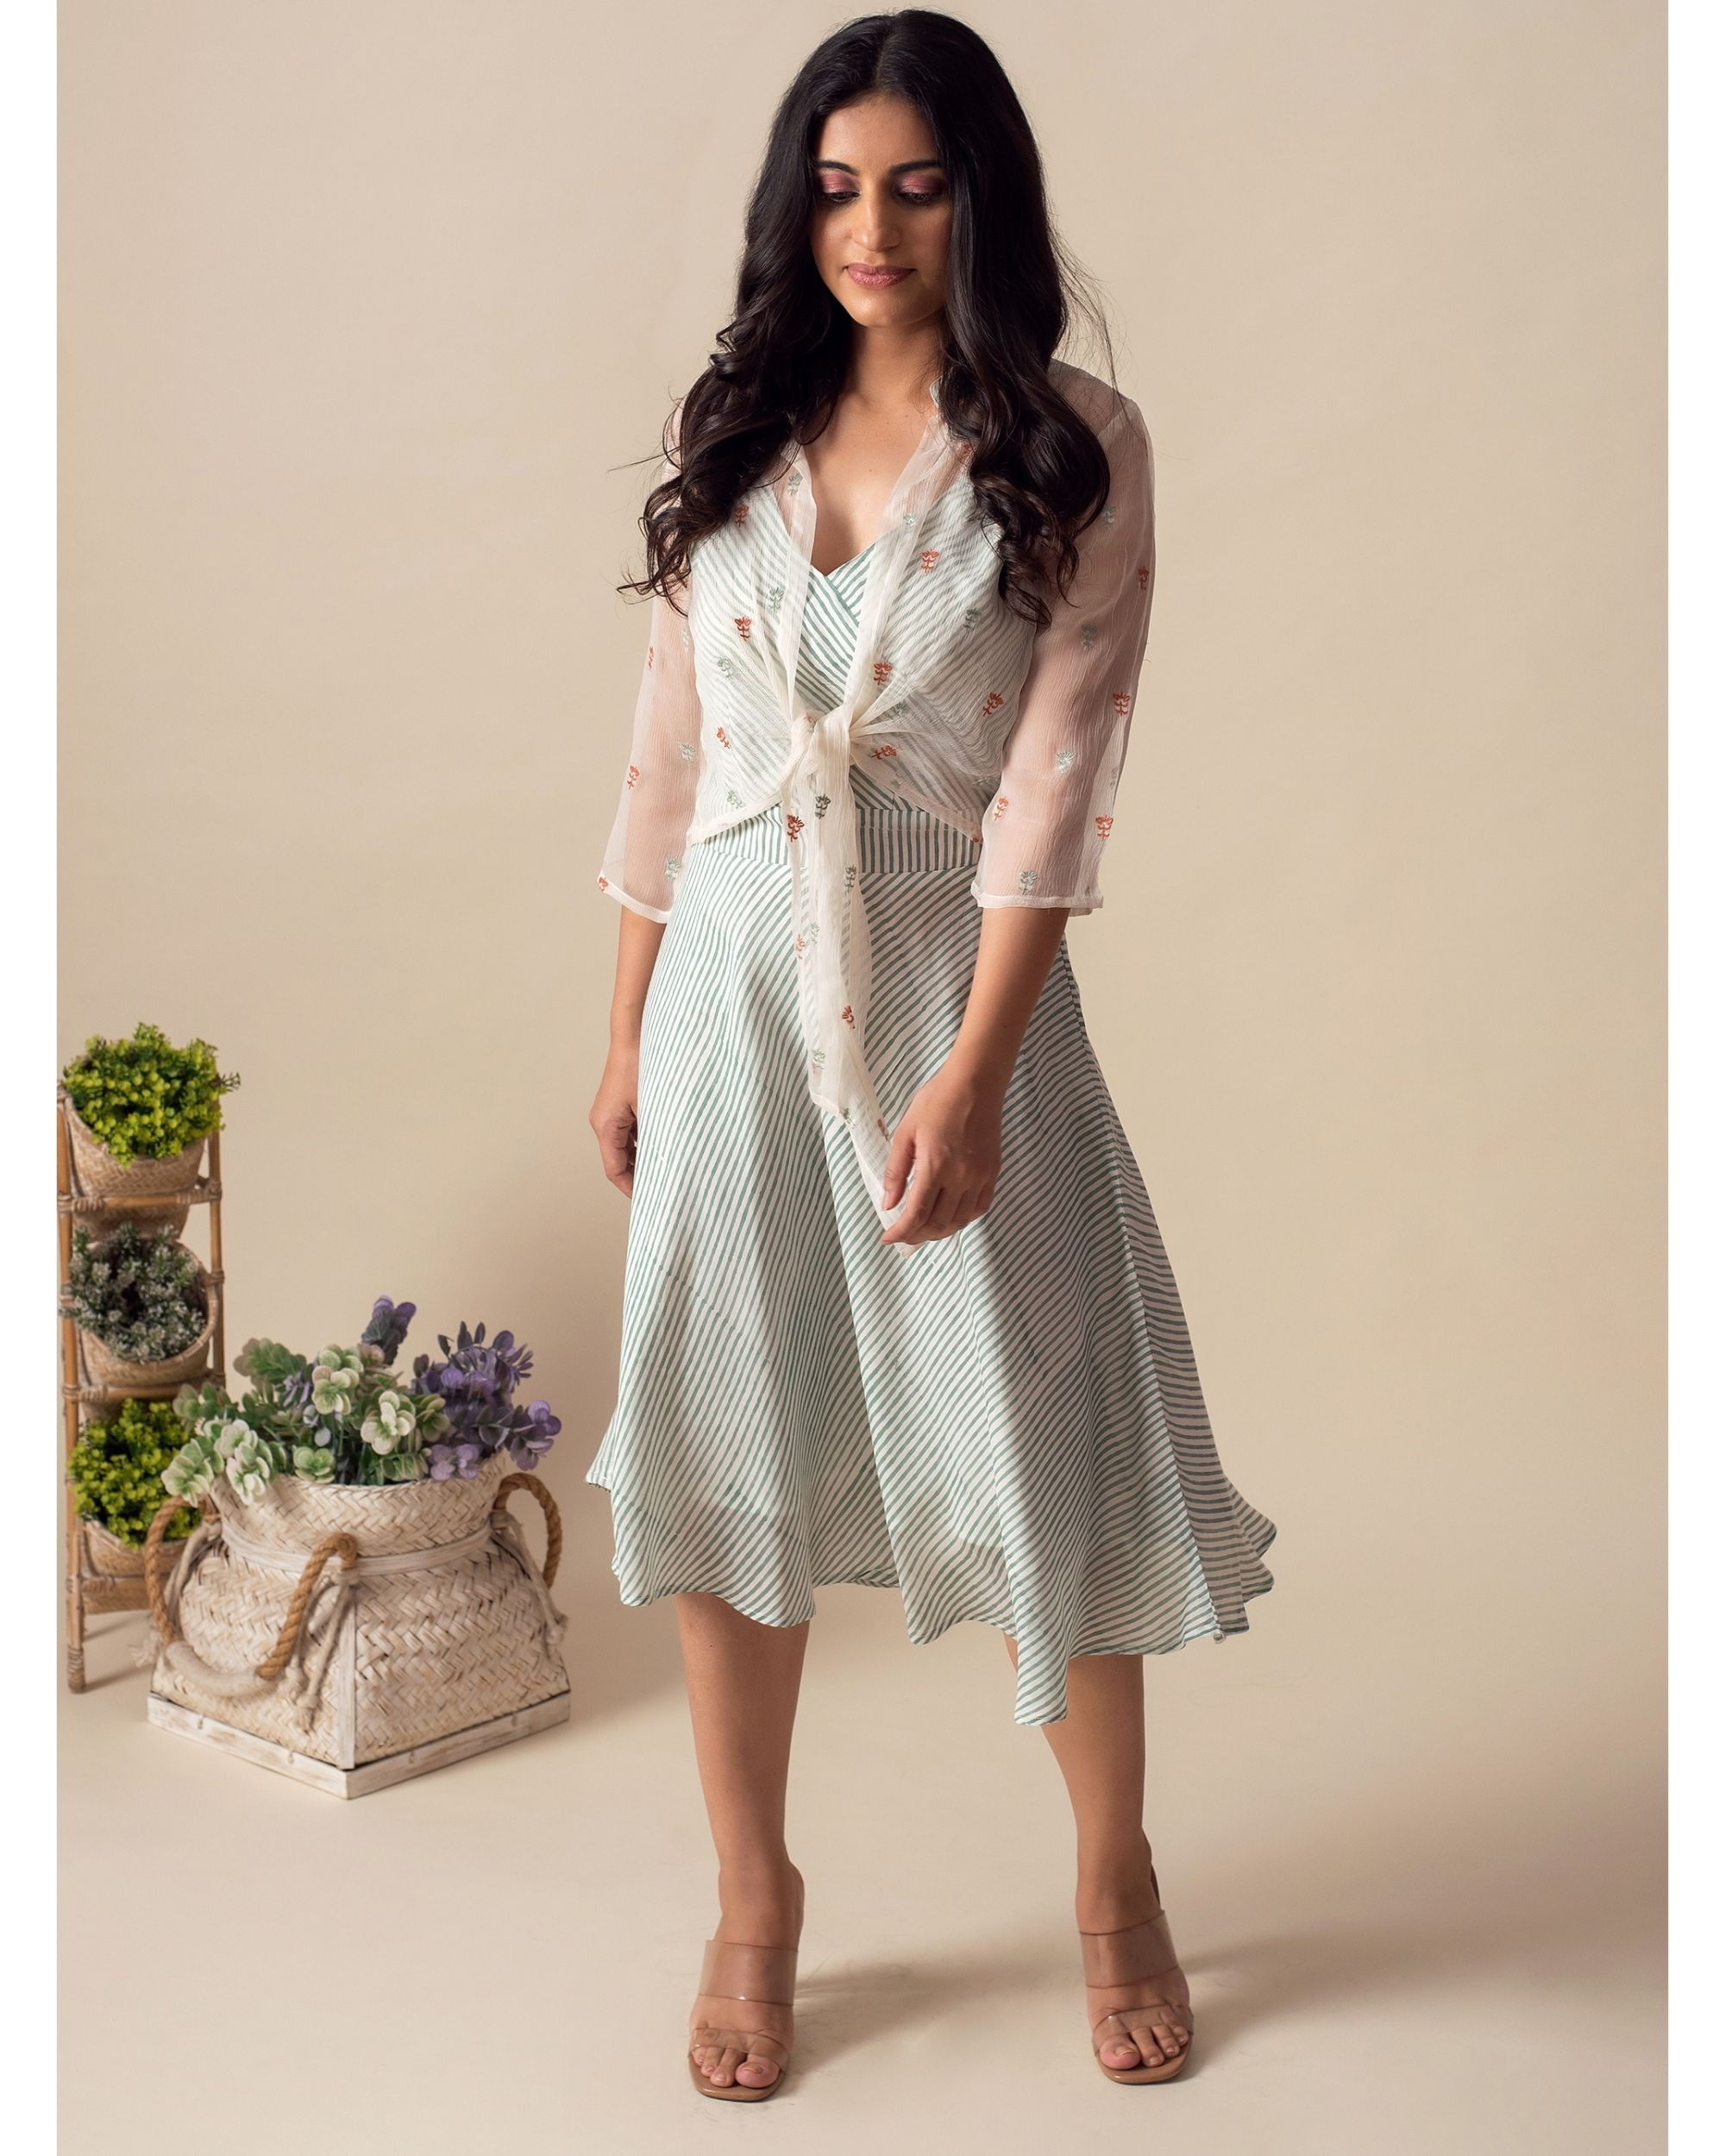 Light mint green stripes dress with chiffon cover-up - Set Of Two